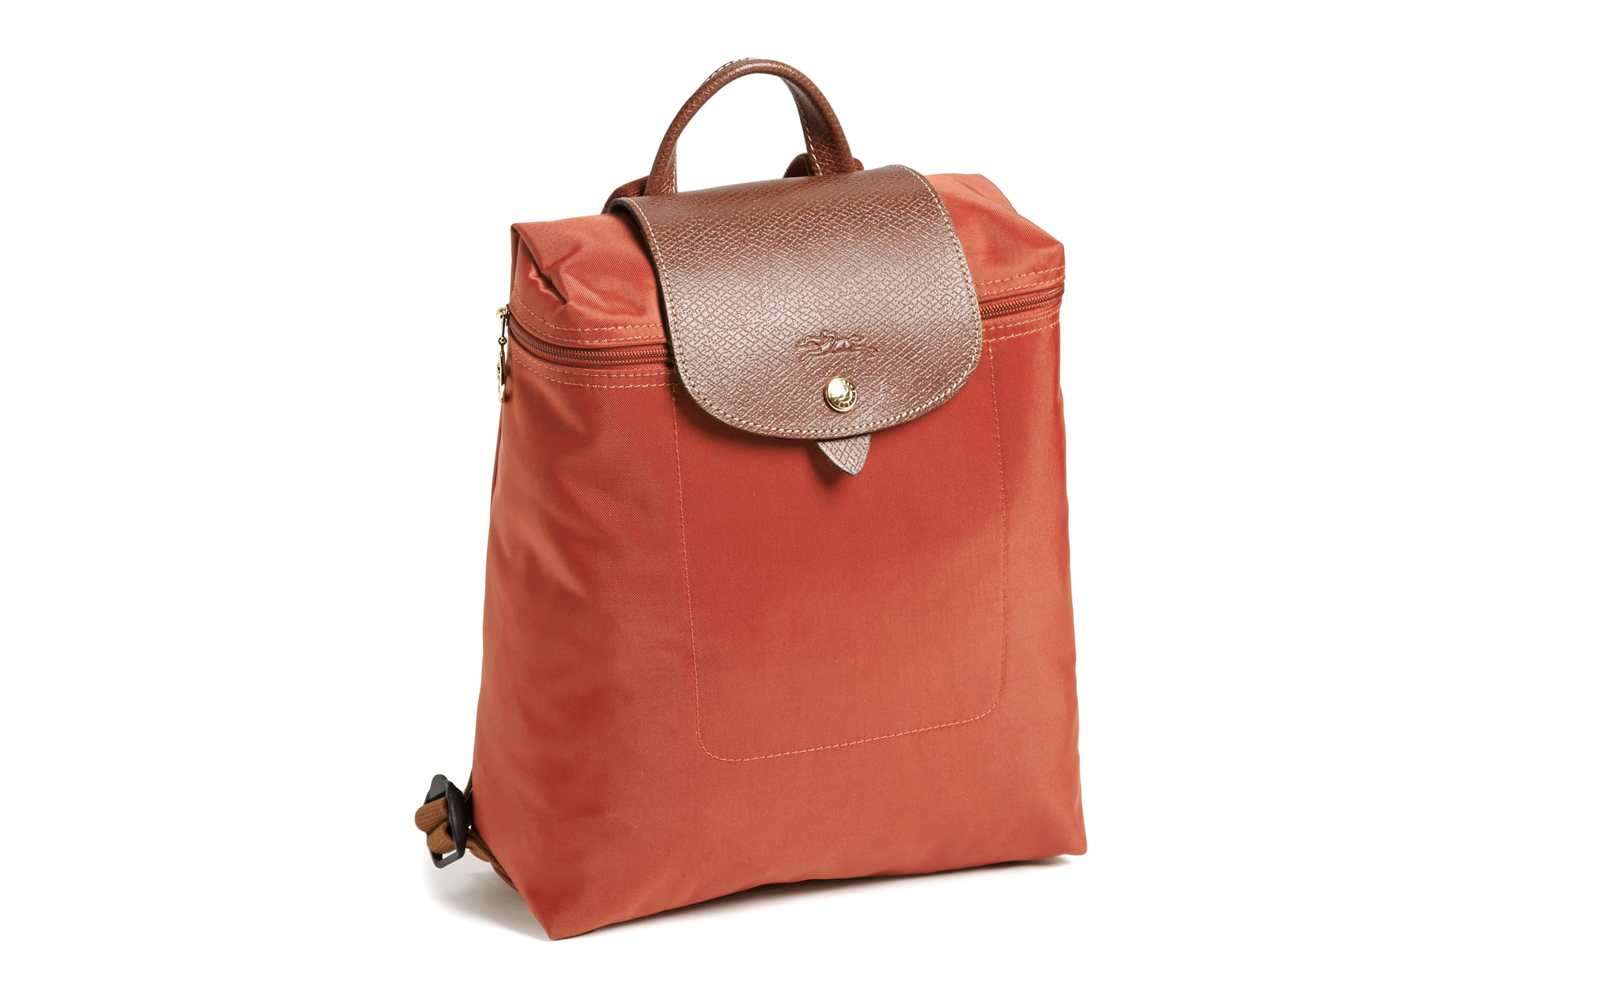 808ffb31dc44 Longchamp s Best Travel Bags Are Majorly on Sale at Nordstrom Right ...